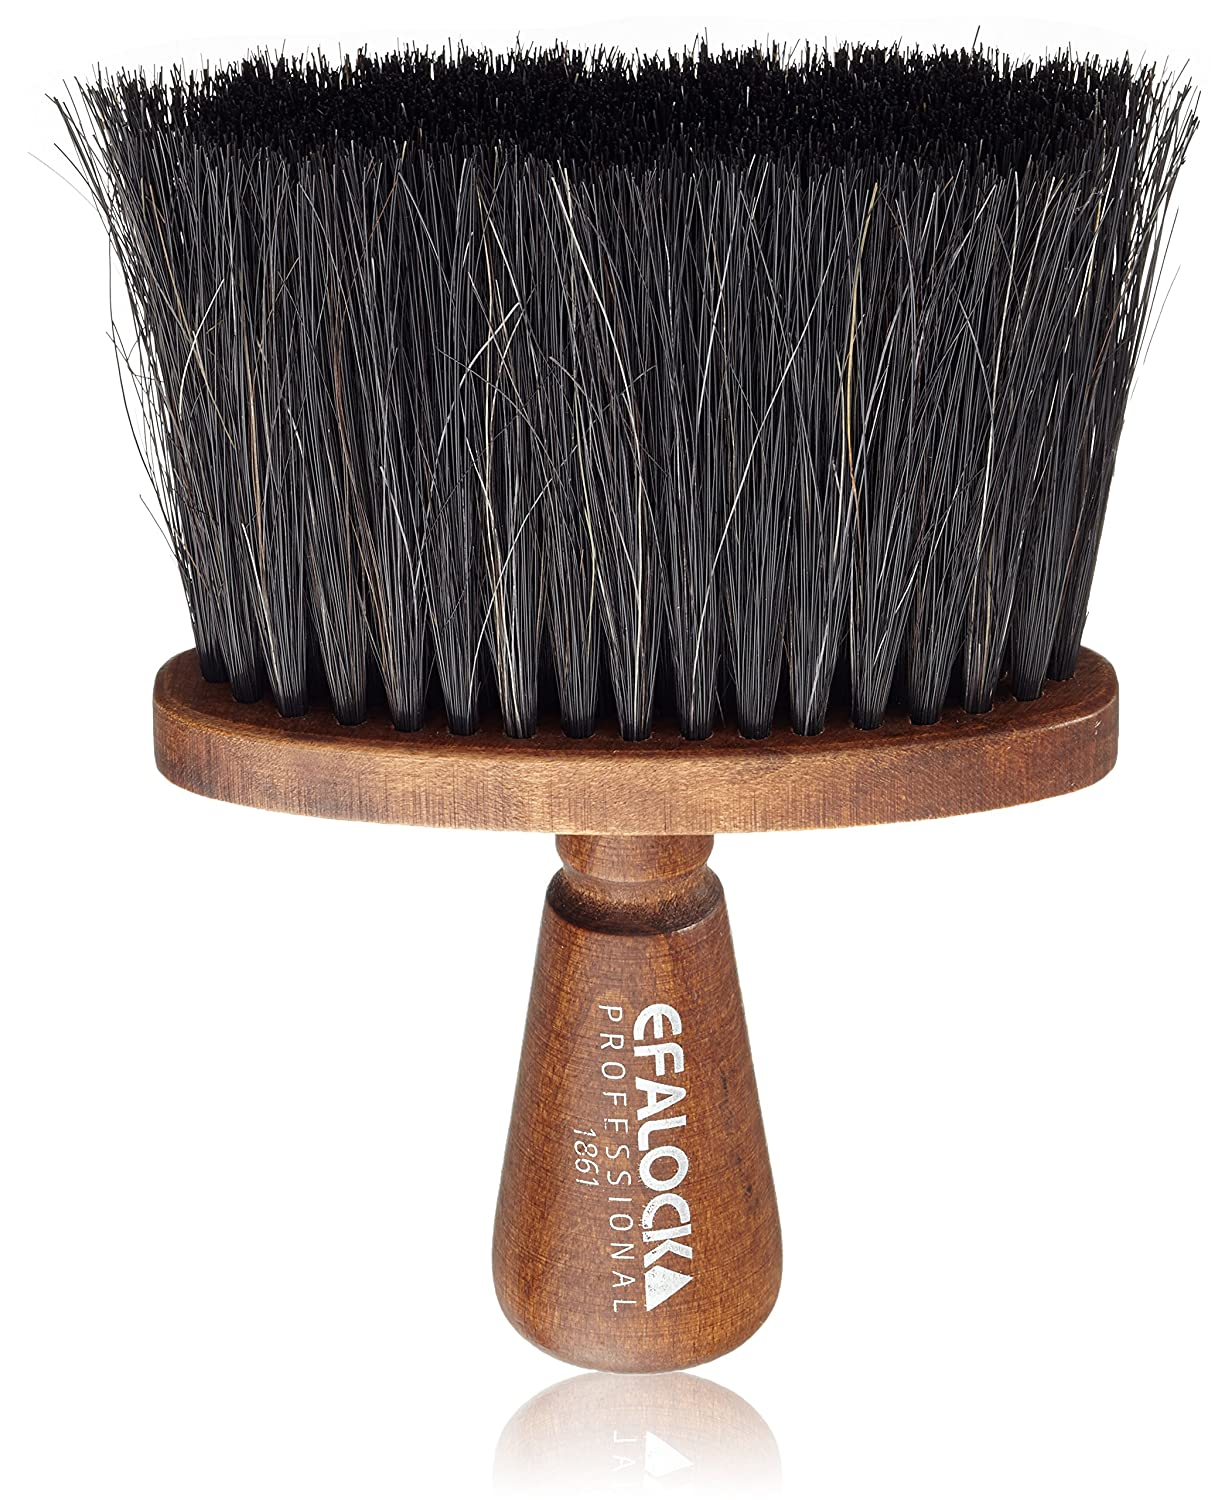 Efalock Neck Brush Horse Hair (1 Pack) Pack of 1 96325297